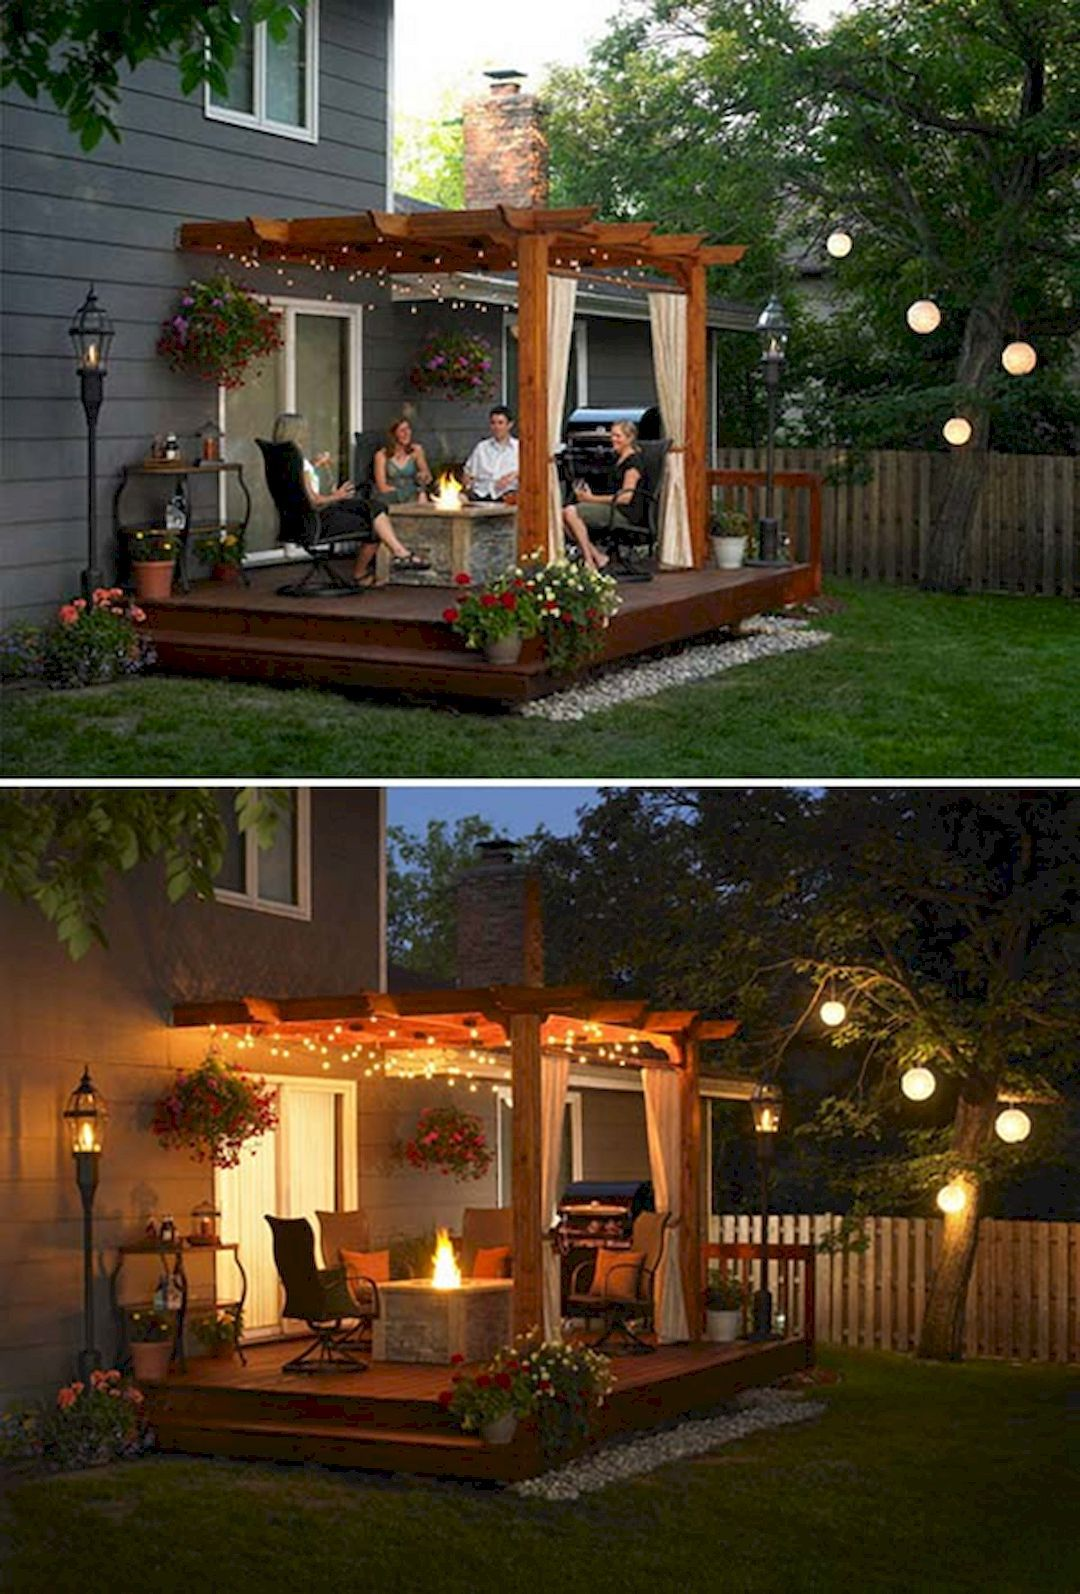 77 Cool Backyard Deck Design Ideas